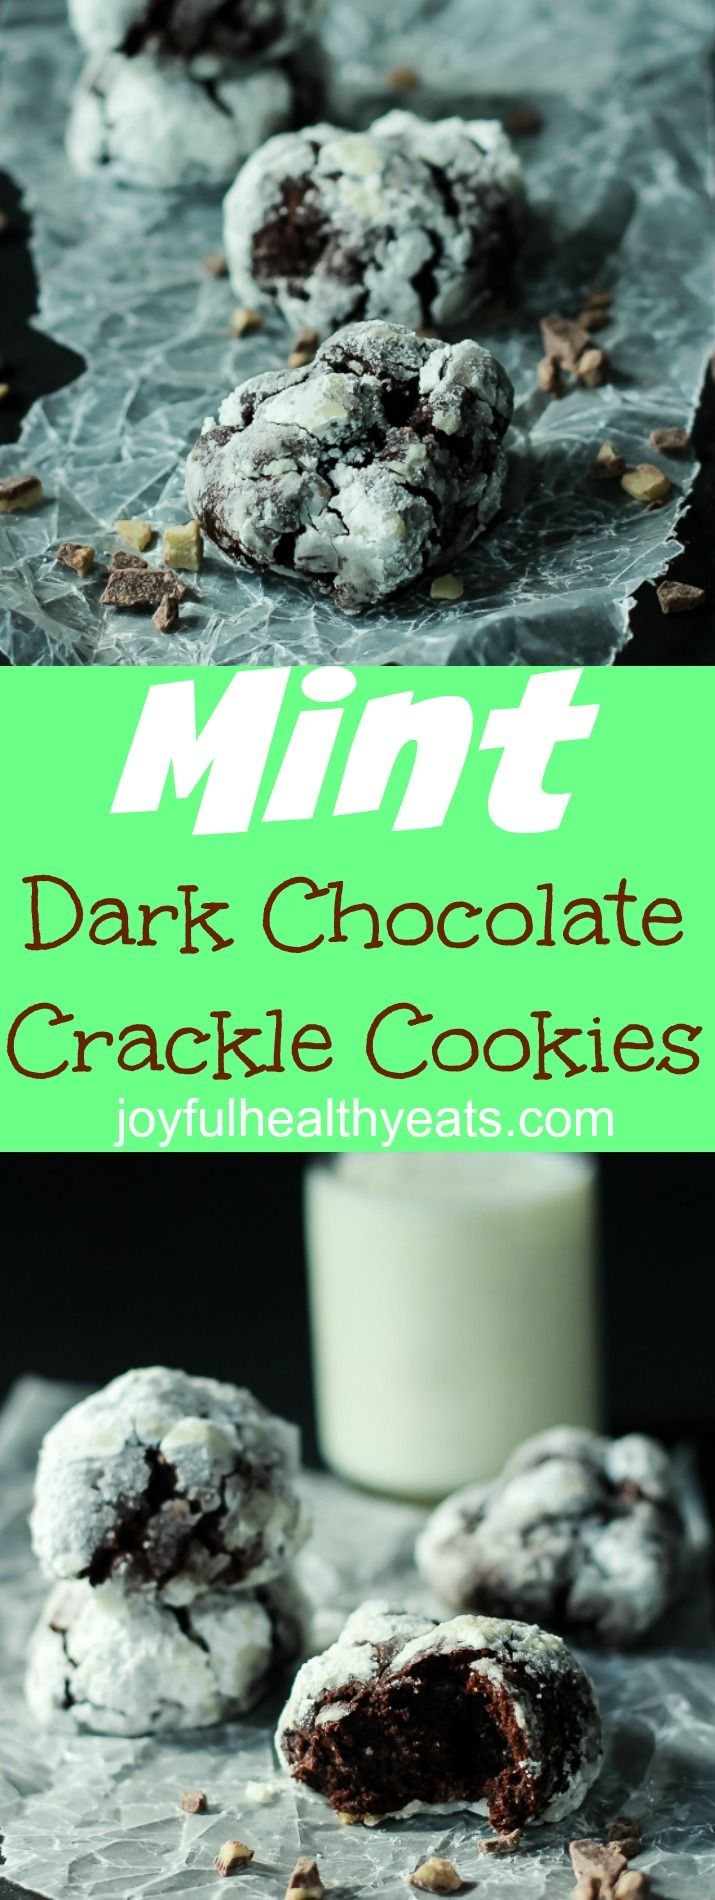 Fresh Andes mint flavor mixed with rich dark chocolate make this the BEST Chocolate Crackle Cookie ever and perfect for the holidays or just any day of the week! | joyfulhealthyeats.com